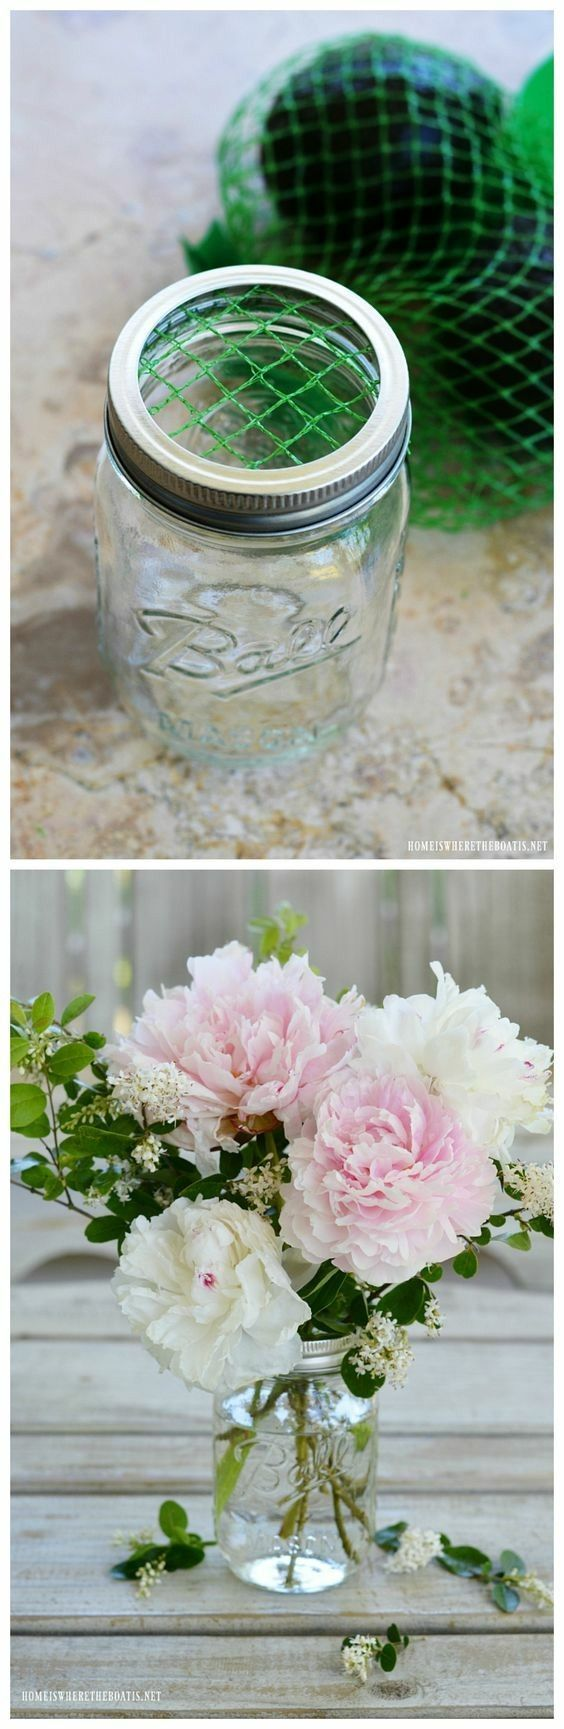 Mason jar decor diy mason jar wedding diy decor mason jar vase